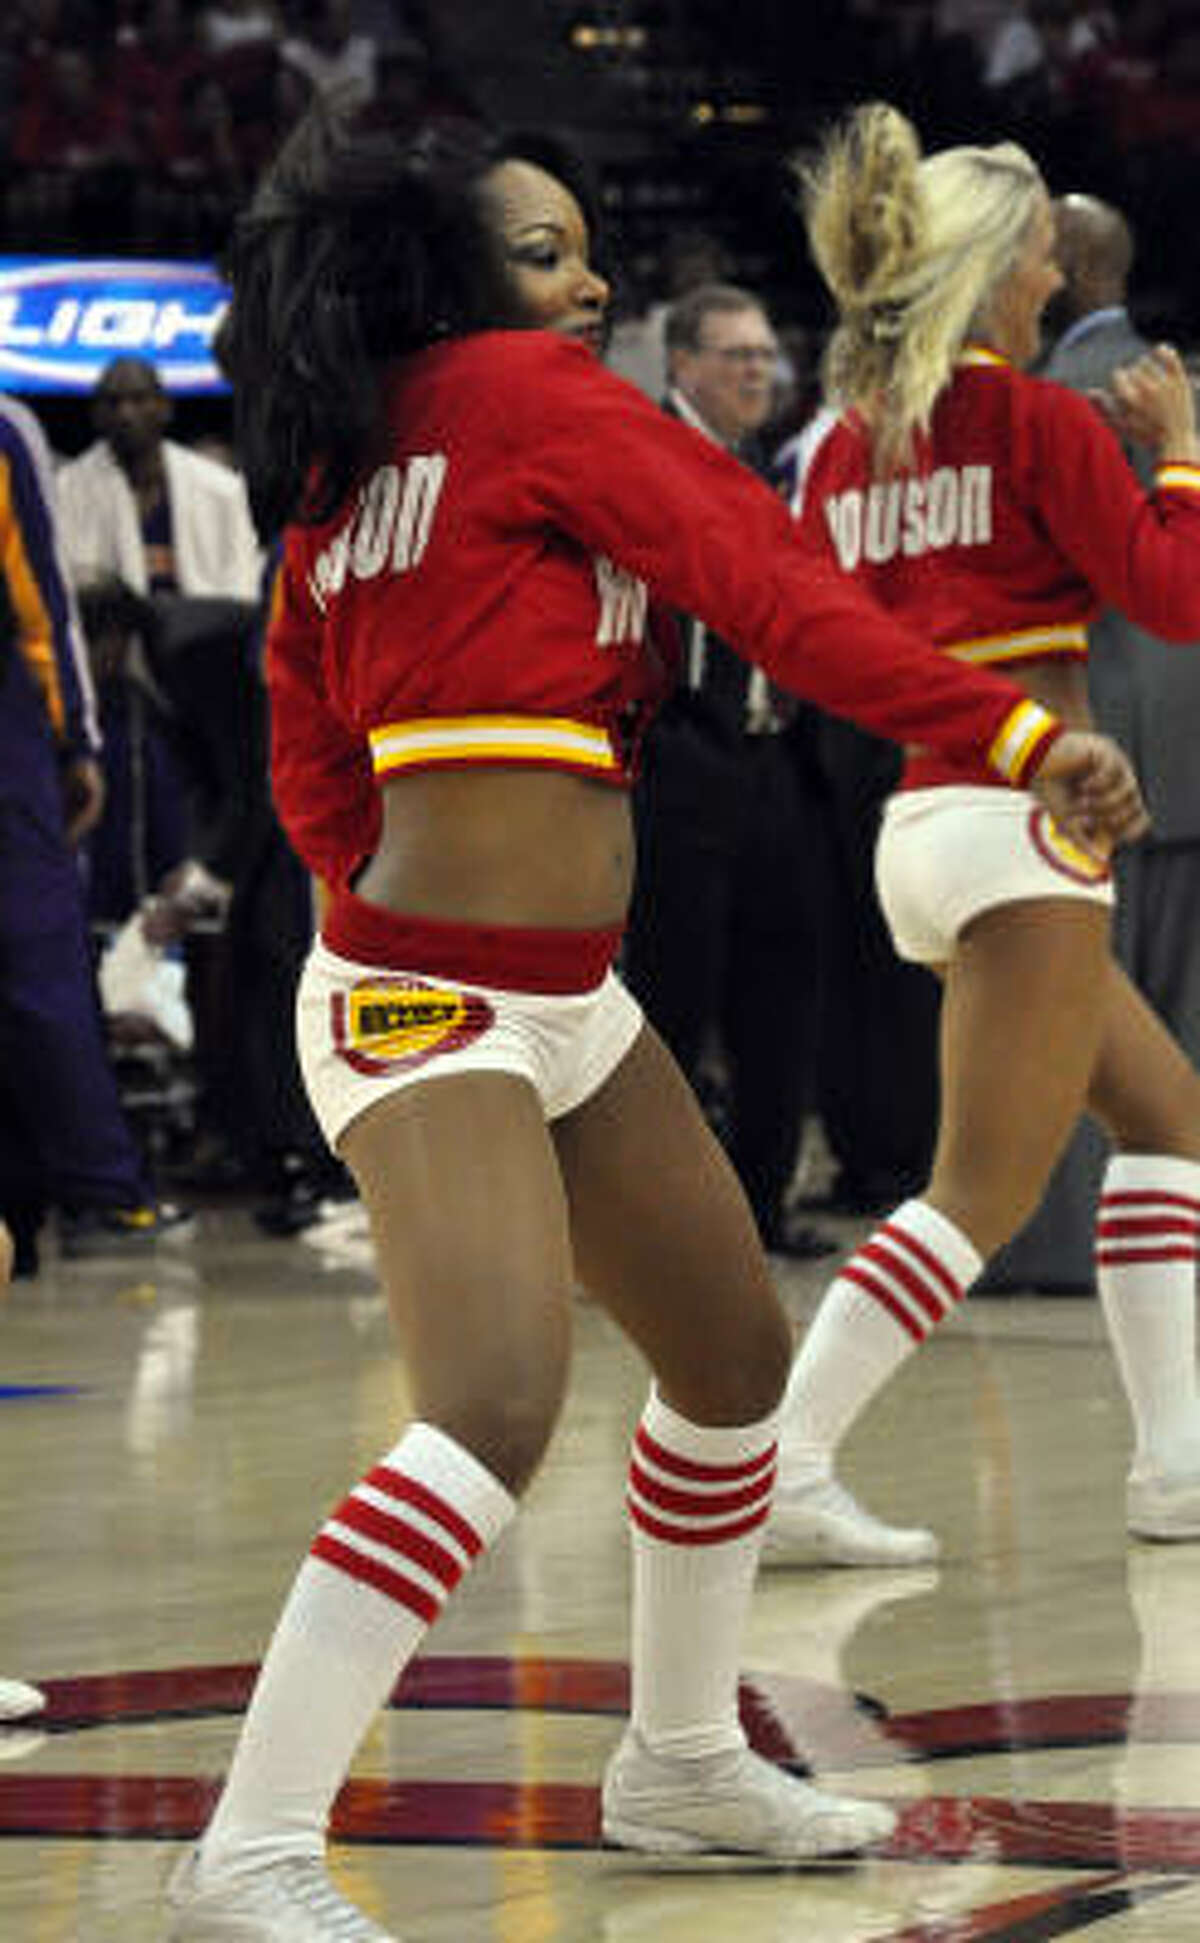 Date: May 14 Series: Rockets vs. Lakers (2nd round) Game: 6 The Rockets Power Dancers perform during a TV timeout.